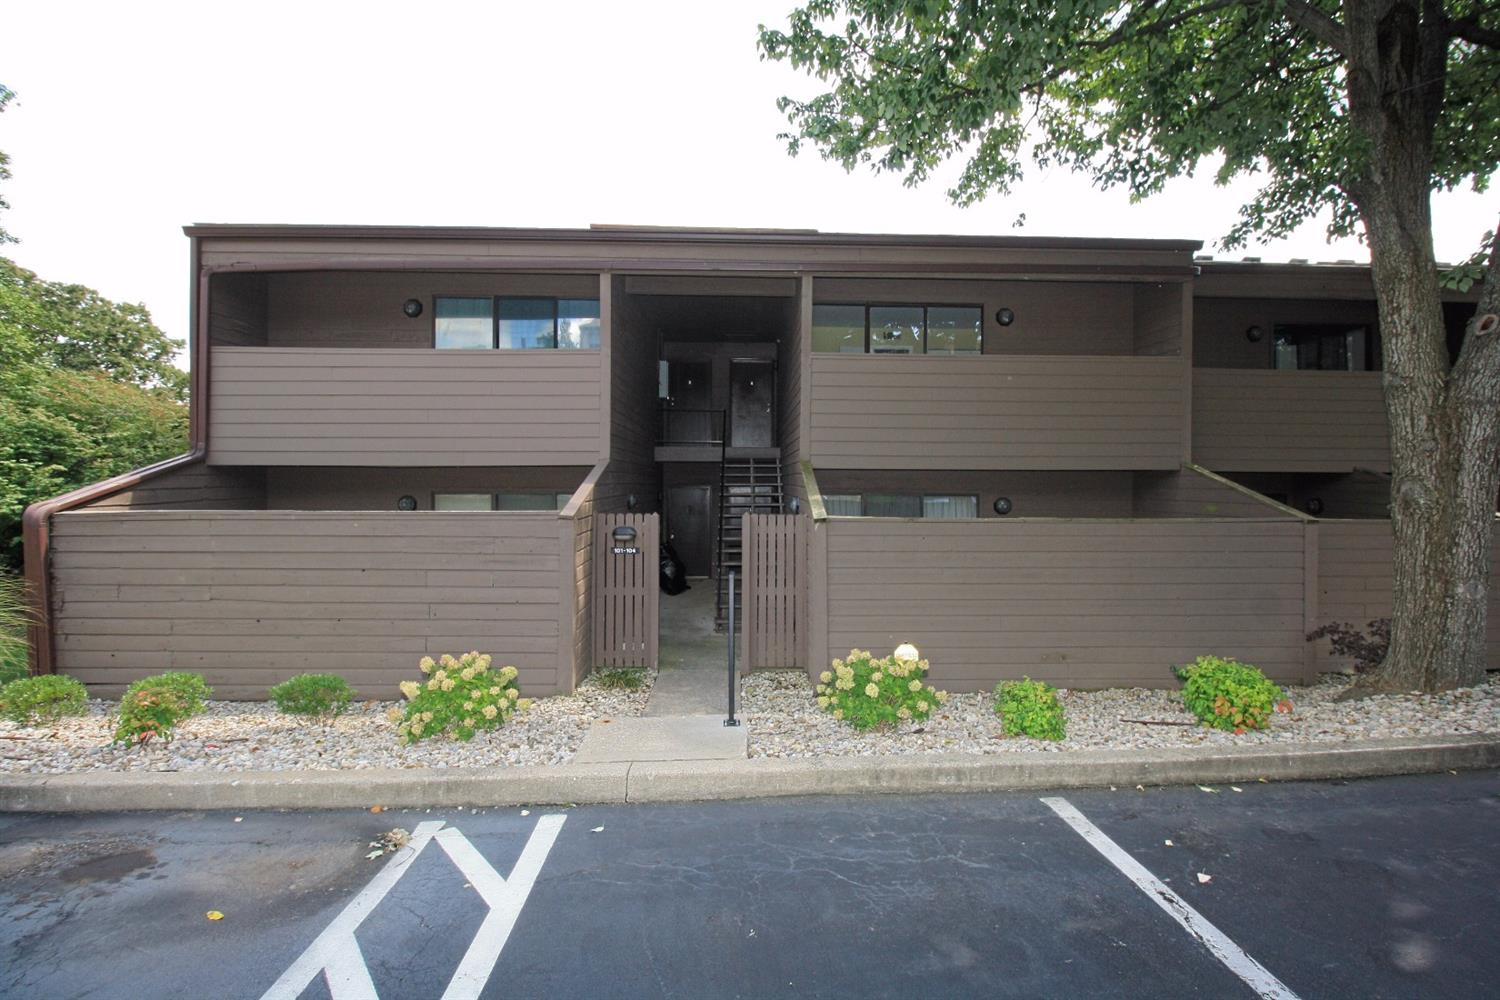 Fantastic%20location%20close%20to%20University%20of%20Kentucky,%20downtown%20Lexington%20and%20quick%20access%20to%20major%20roads.%20%20Perfect%20unit%20for%20a%20student,%20graduate%20resident,%20young%20professional%20or%20downsizing%20couple%20or%20individuals.%20This%20totally%20remodeled%201%20bedroom%20and%201%20bath%20condo%20unit%20is%20ready%20to%20move%20into.%20%20Seller%20has%20completely%20renovated%20kitchen%20with%20new%20cabinets,%20granite%20countertops,%20new%20stainless%20steal%20appliances%20and%20a%20fresh%20coat%20of%20interior%20paint.%20%20Beautiful%20wood%20flooring%20that%20is%20allergy%20and%20pet%20friendly.%20Enjoy%20private%20balconies%20off%20bedroom%20and%20family%20room%20which%20has%20a%20tree%20lined%20area.%20%20Just%20a%20walk%20across%20parking%20lot%20to%20private%20clubhouse,%20pool%20and%20laundry%20facility.%20%20Just%20minutes%20from%20UK,%20shopping,%20downtown%20events%20and%20entertainment.